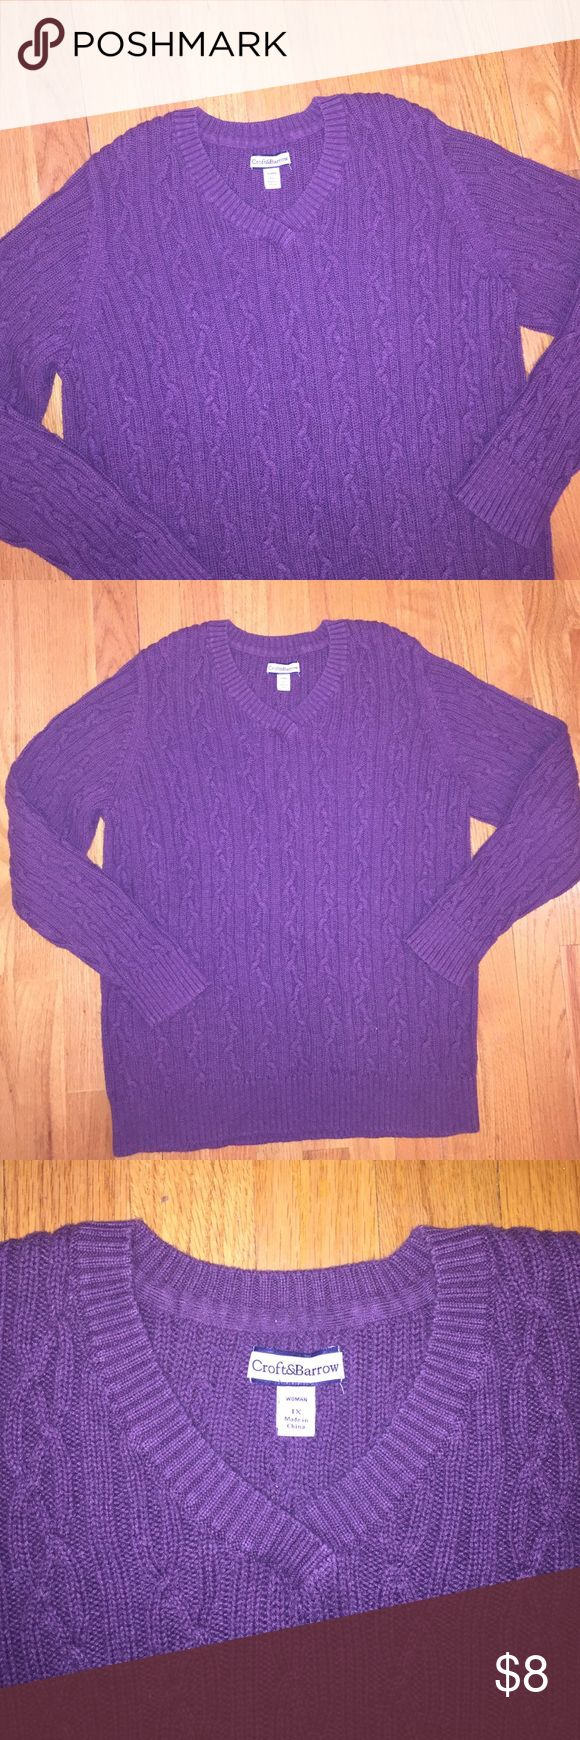 Women's Croft & Barrow Sweater Size 1X Women's Croft & Barrow Long Sleeve Sweater Size 1X. Purple. 100% Cotton. croft & barrow Sweaters